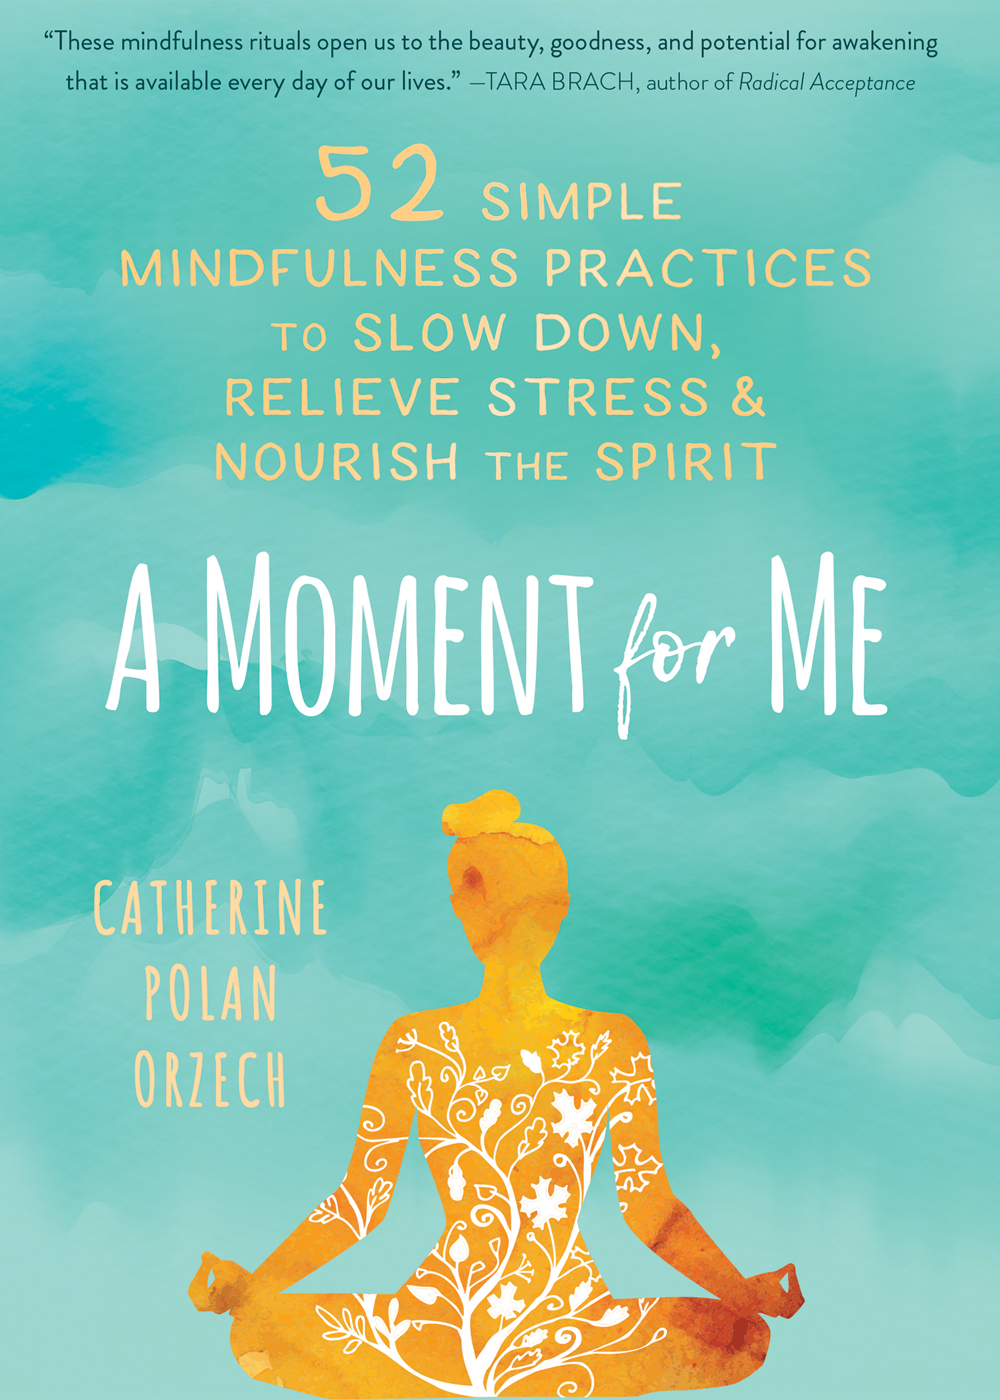 [PDF] [EPUB] A Moment for Me: 52 Simple Mindfulness Practices to Slow Down, Relieve Stress, and Nourish the Spirit Download by Catherine Polan Orzech